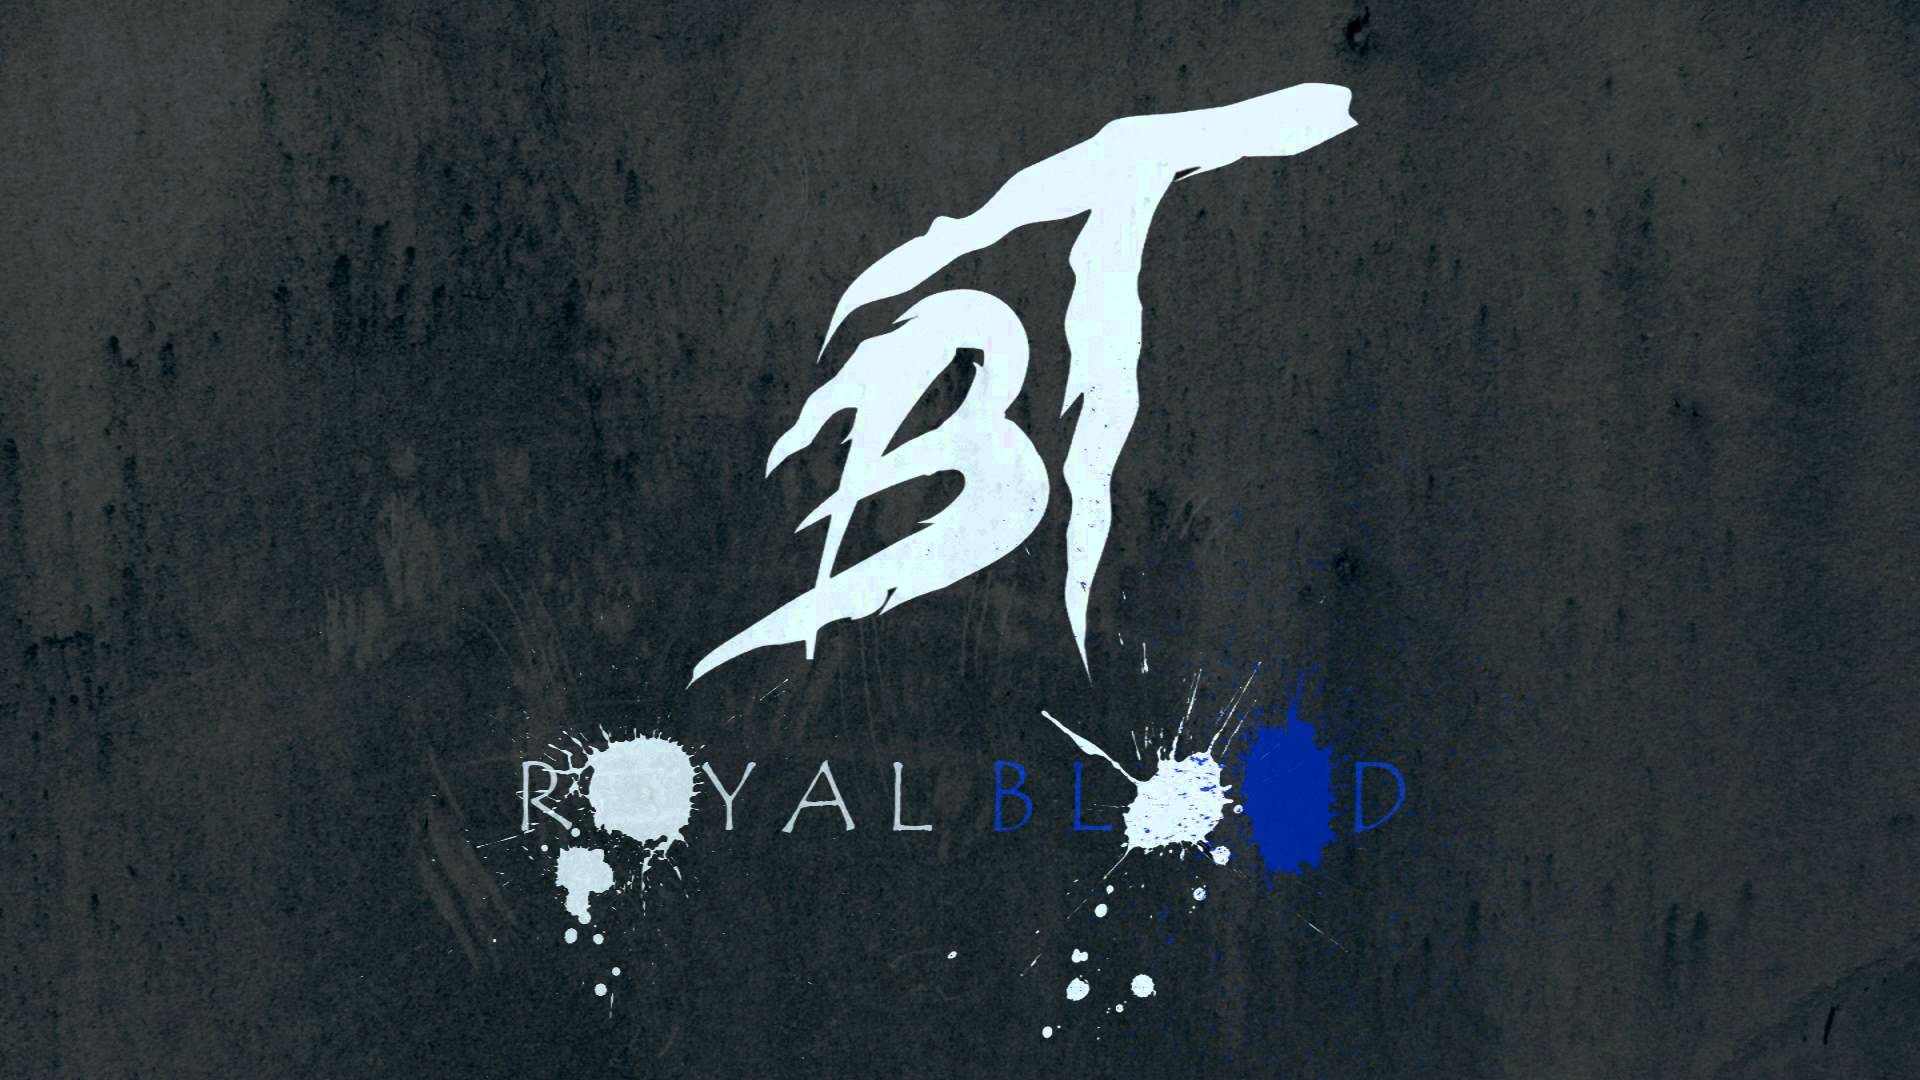 Royal Blood Wallpaper 4K